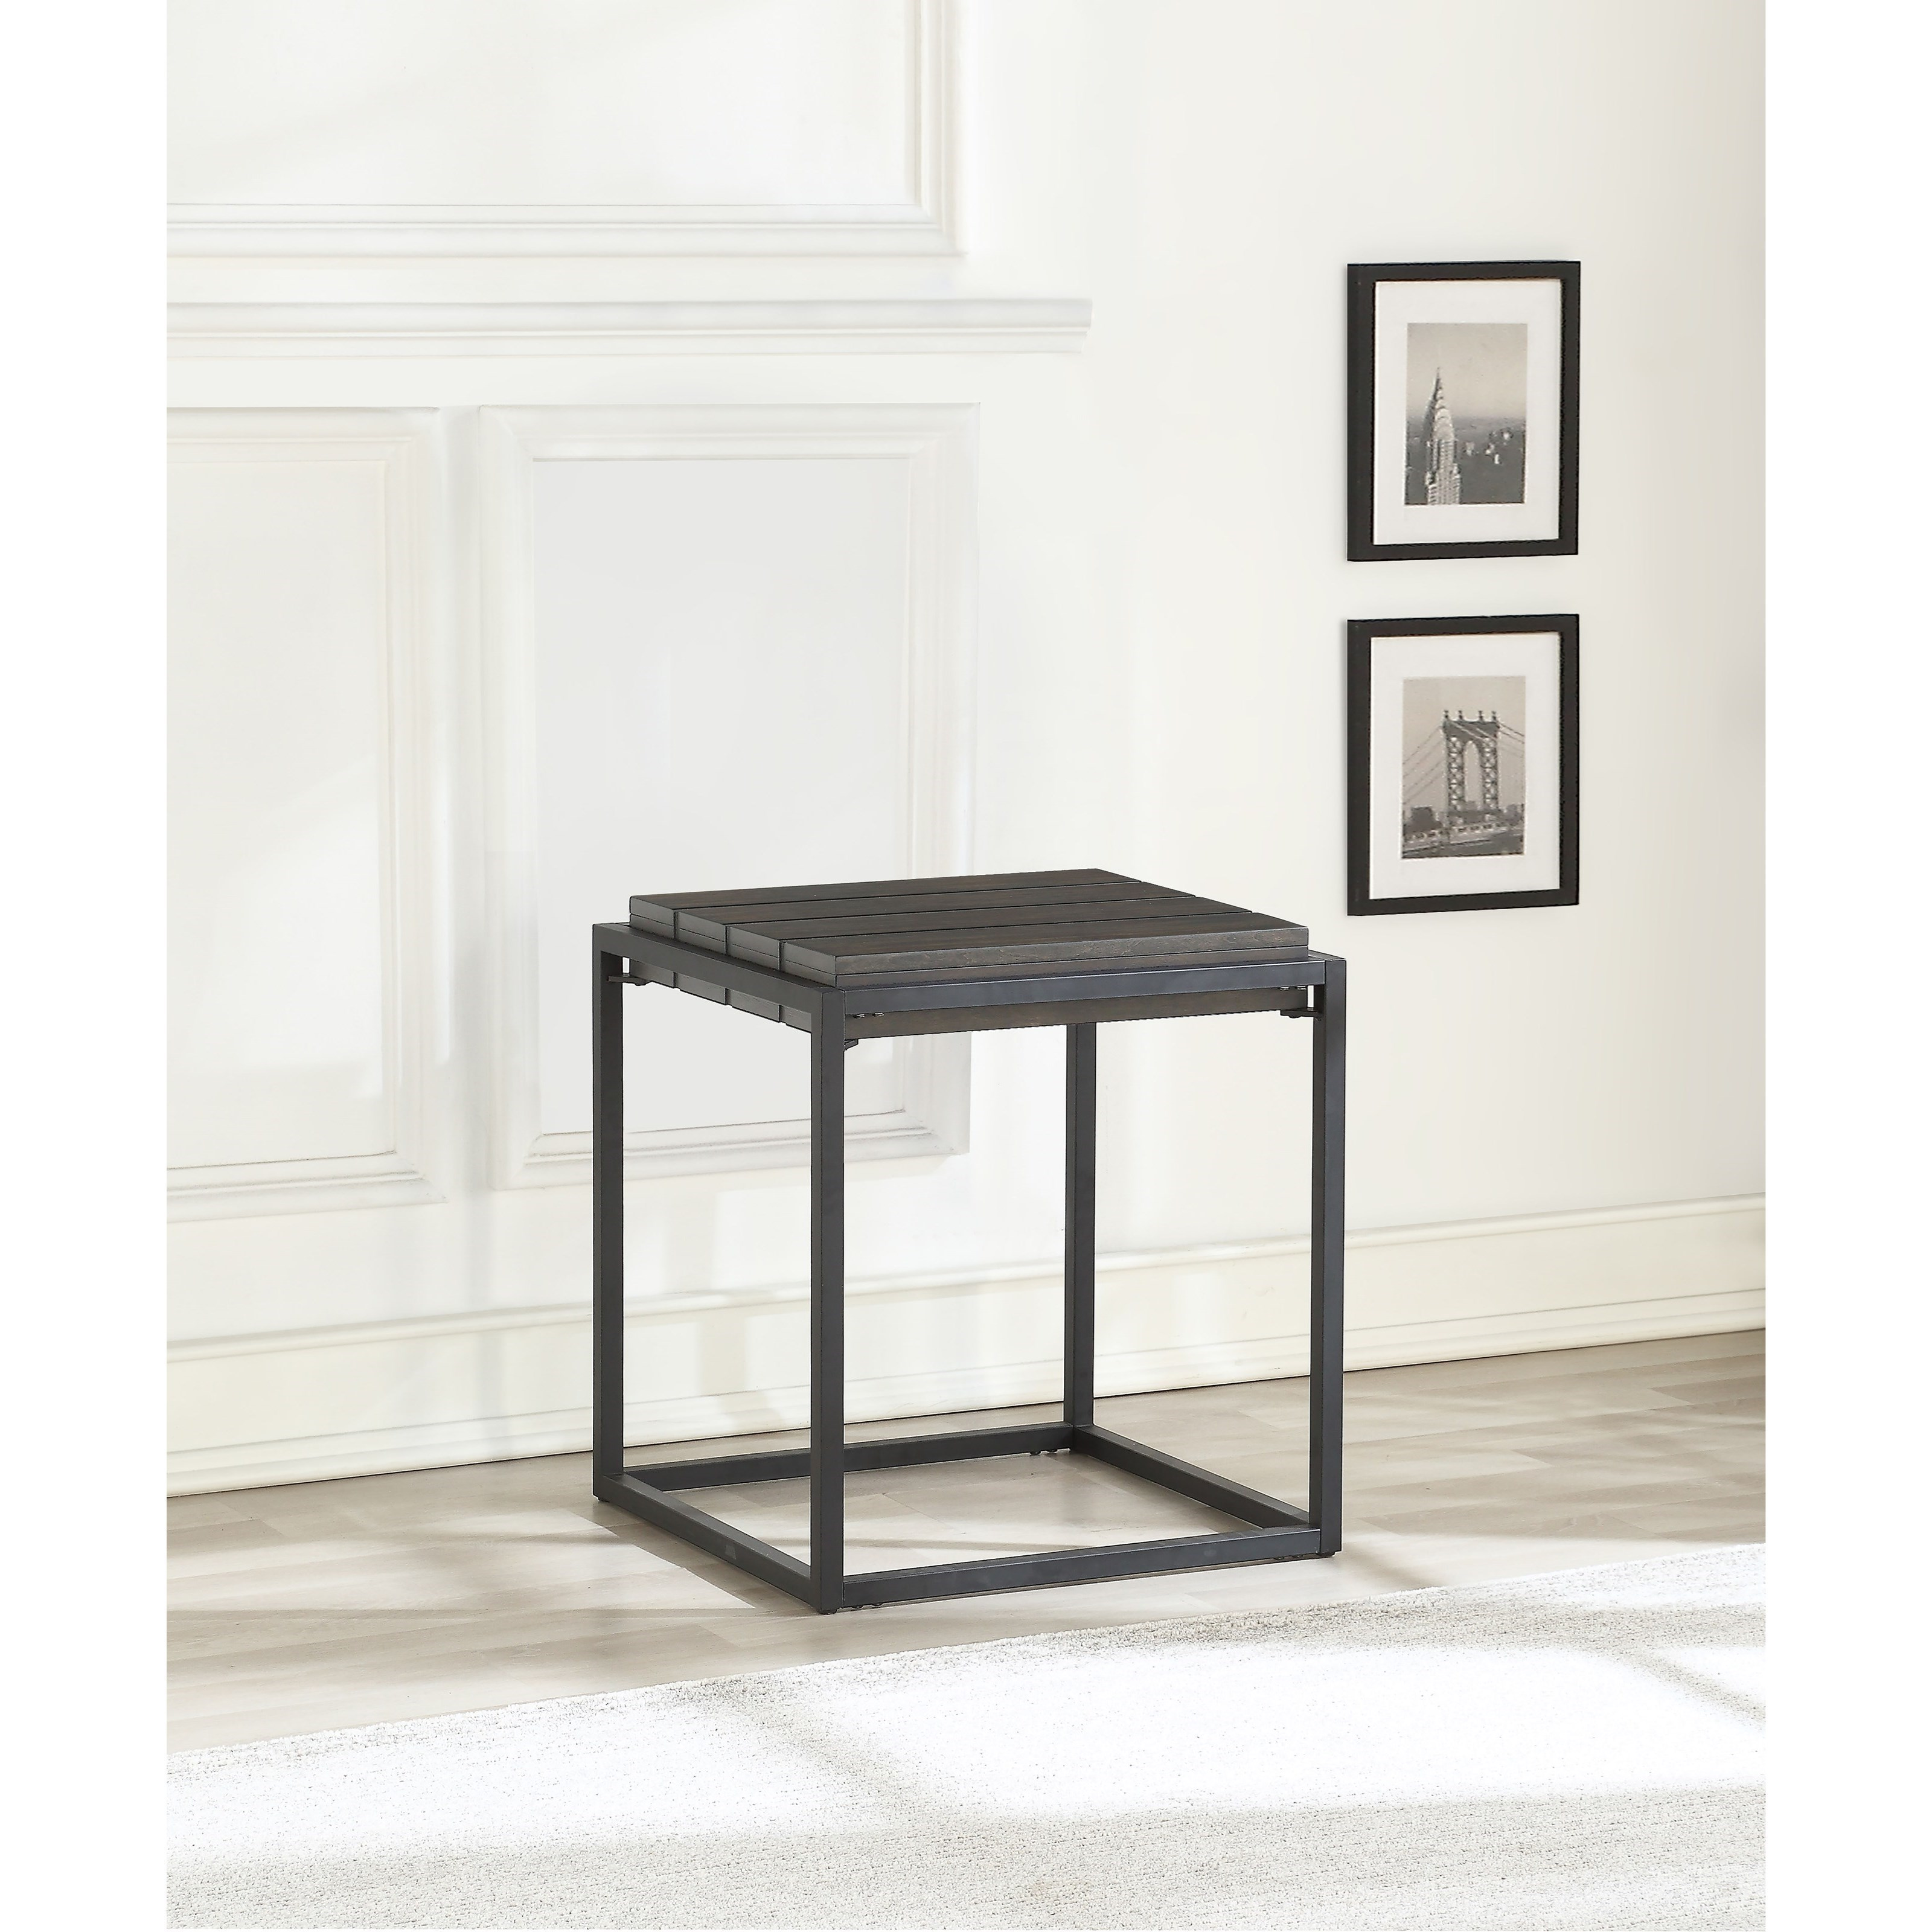 Contemporary End Table with Iron Base